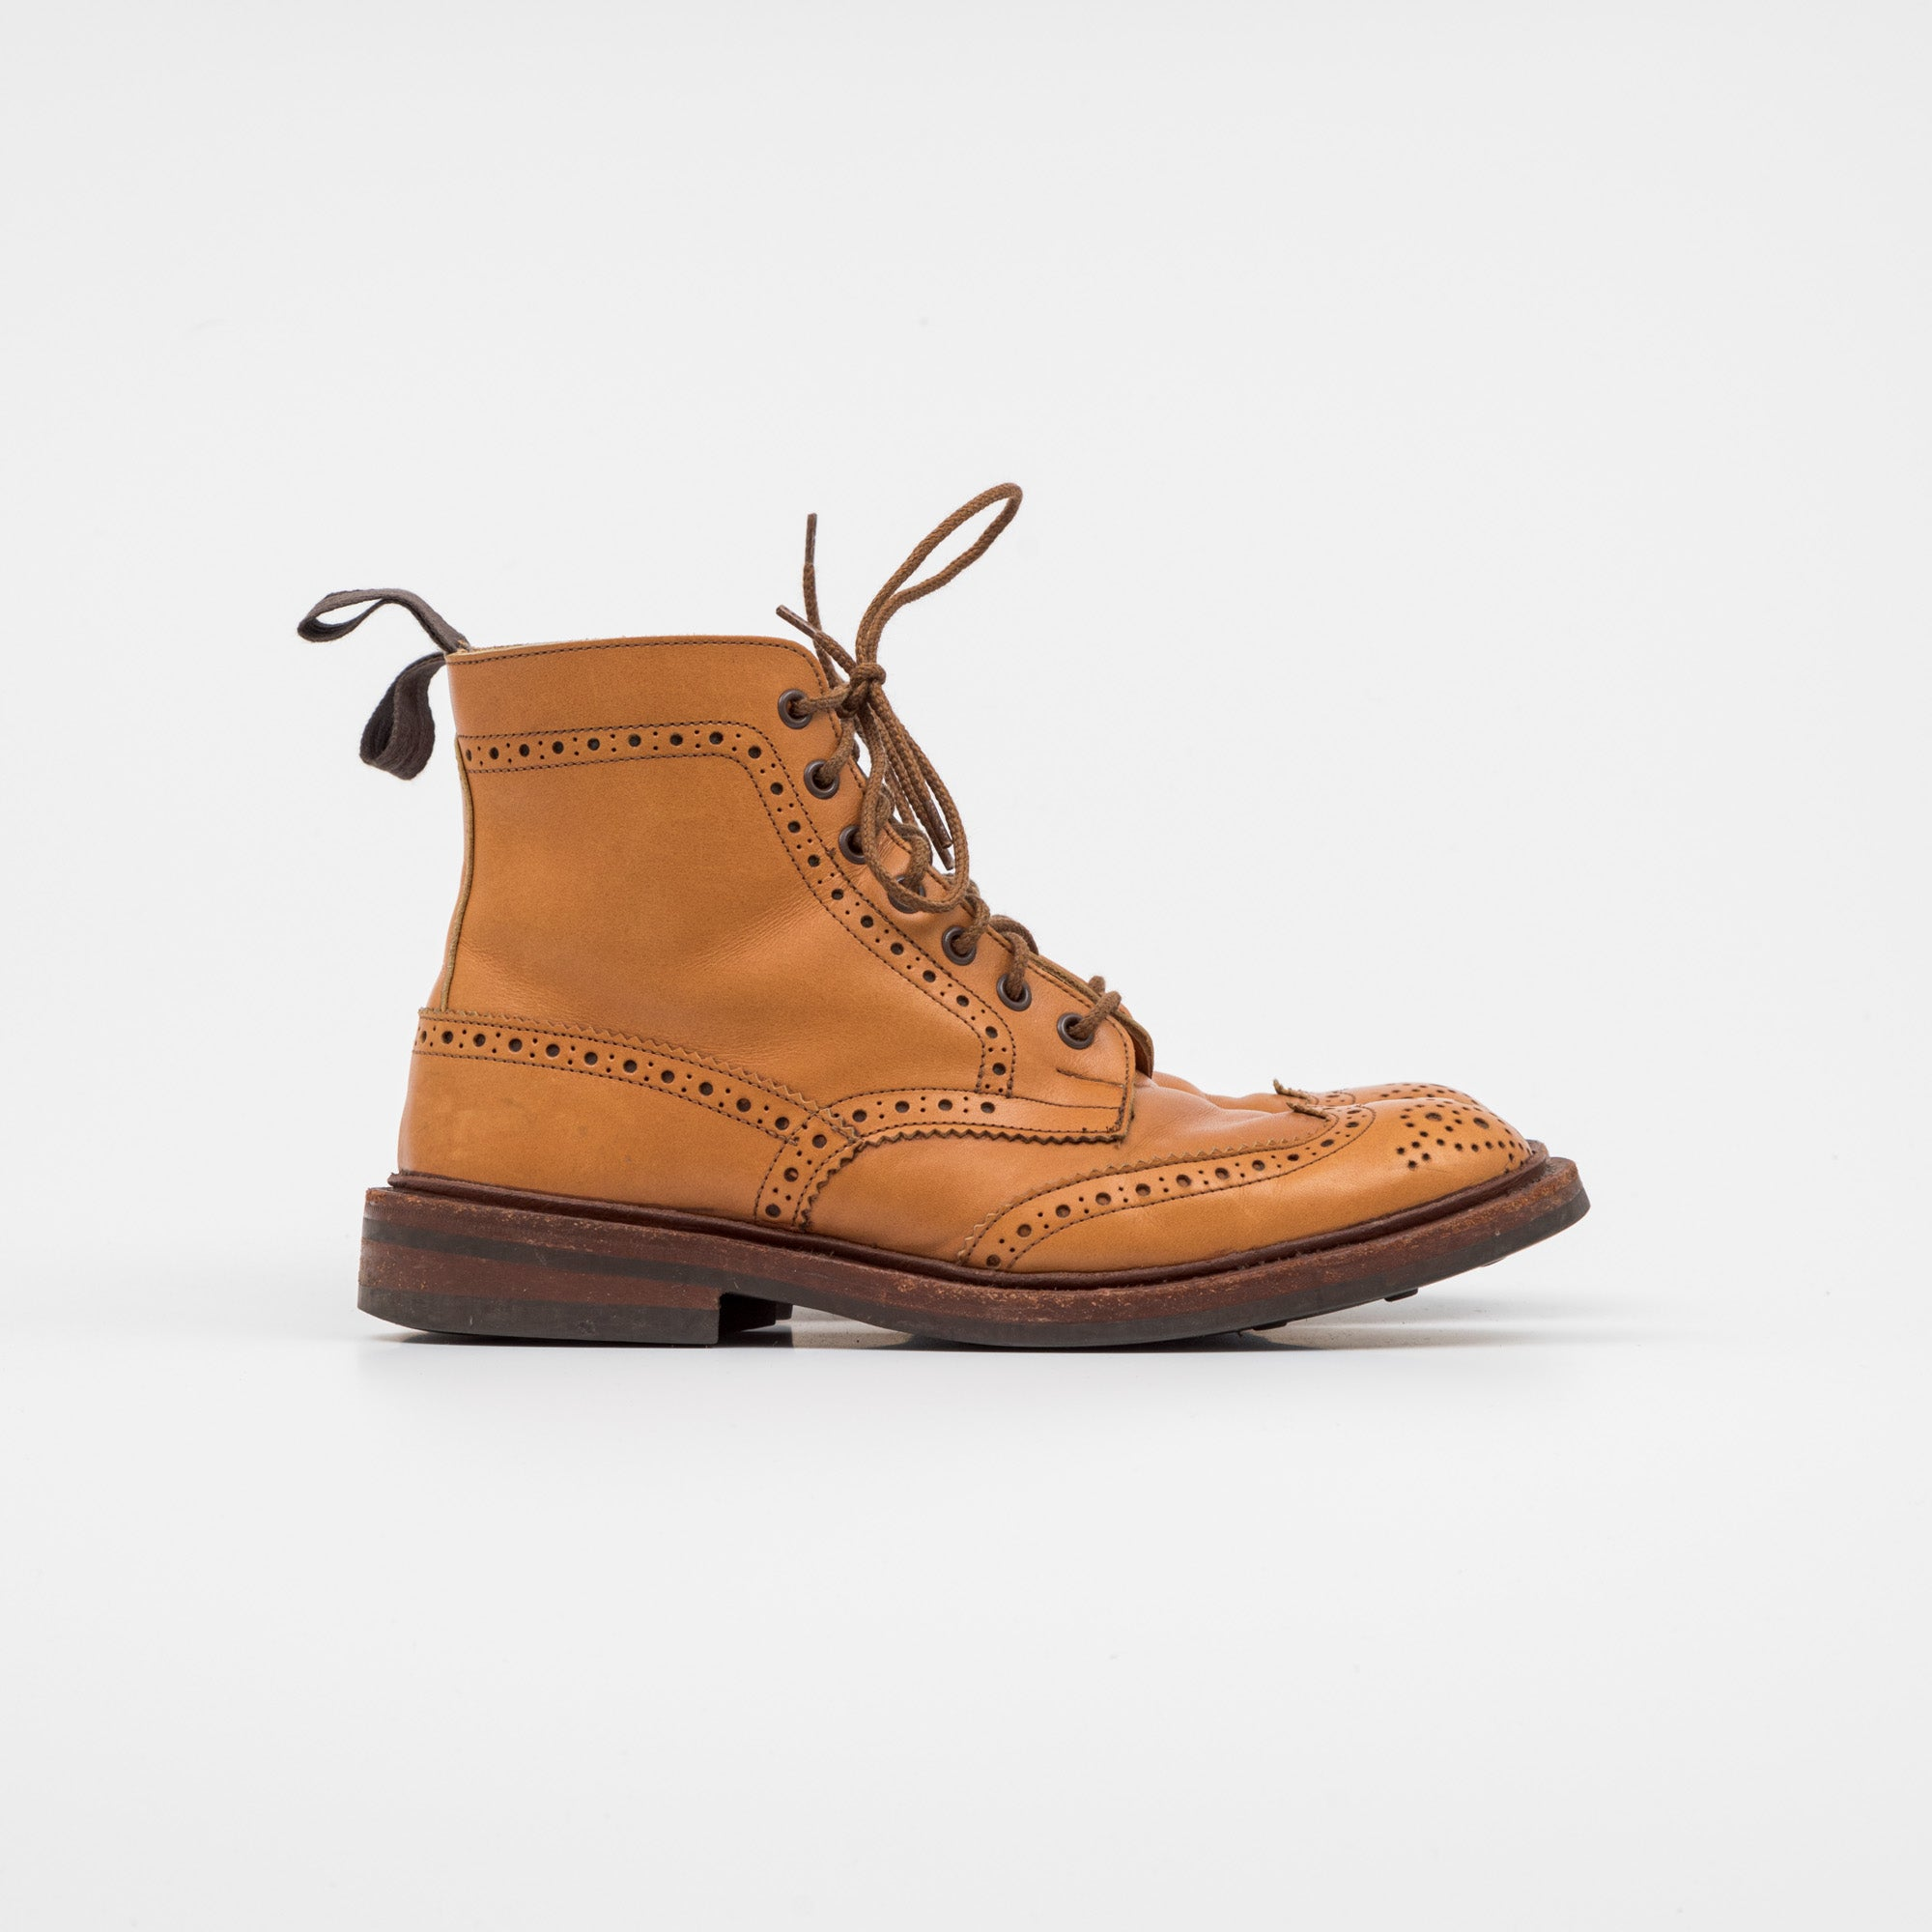 Tricker's Acorn Antique Brogue Boots